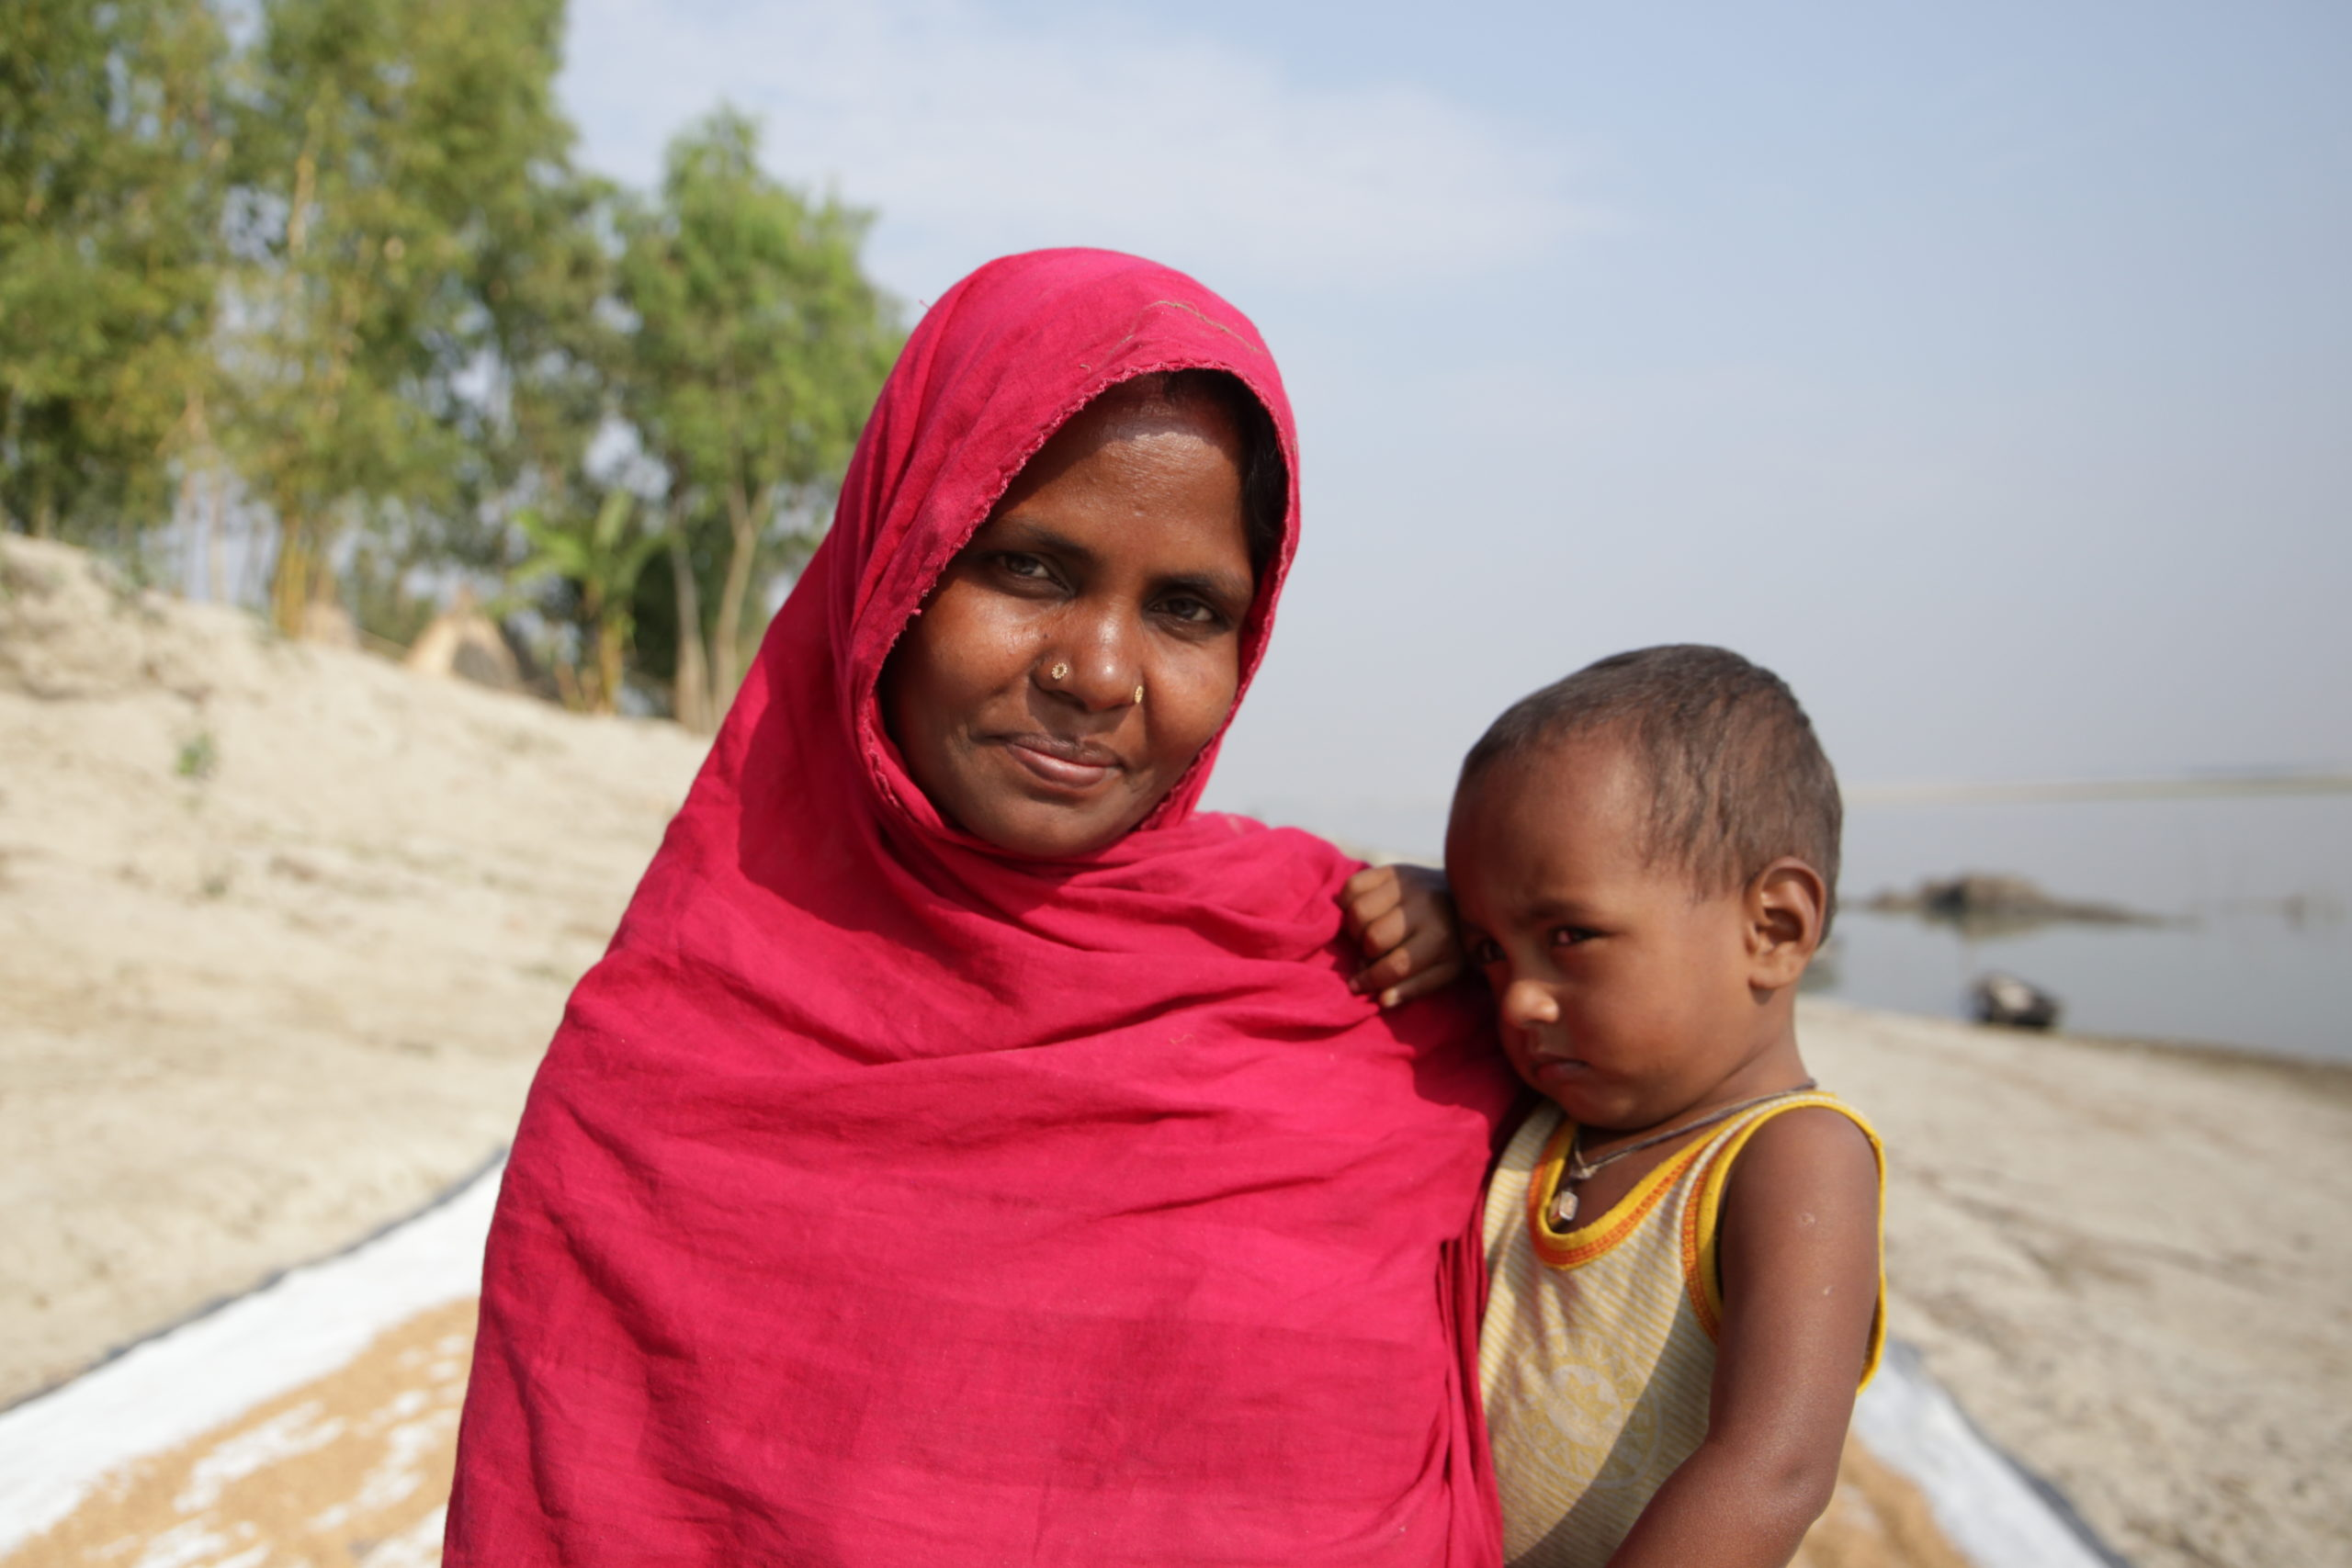 A woman stands on a beach holding a young child